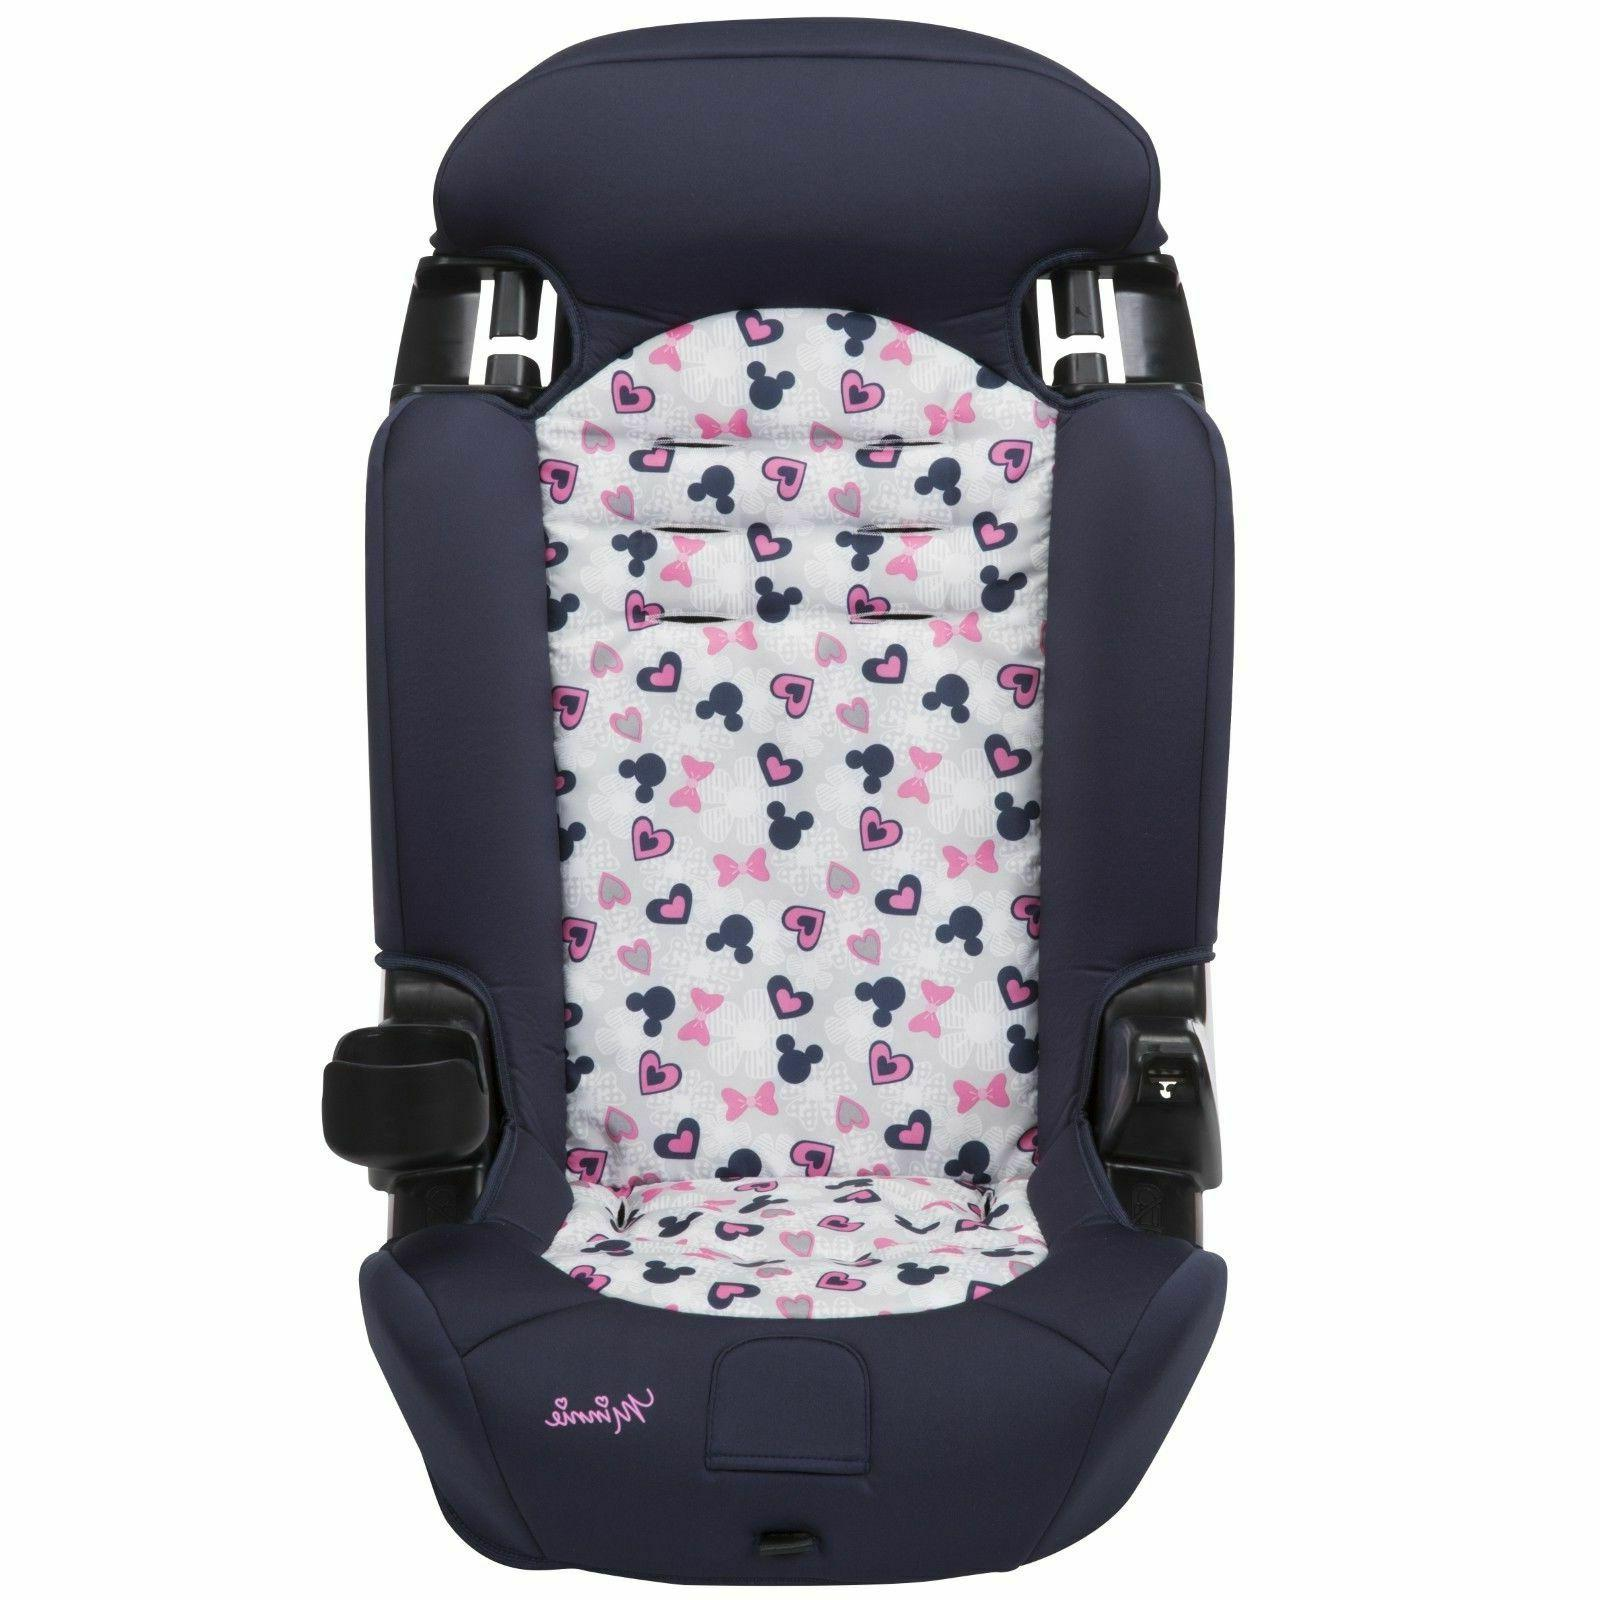 Baby Safety Seat 2in1 Highback